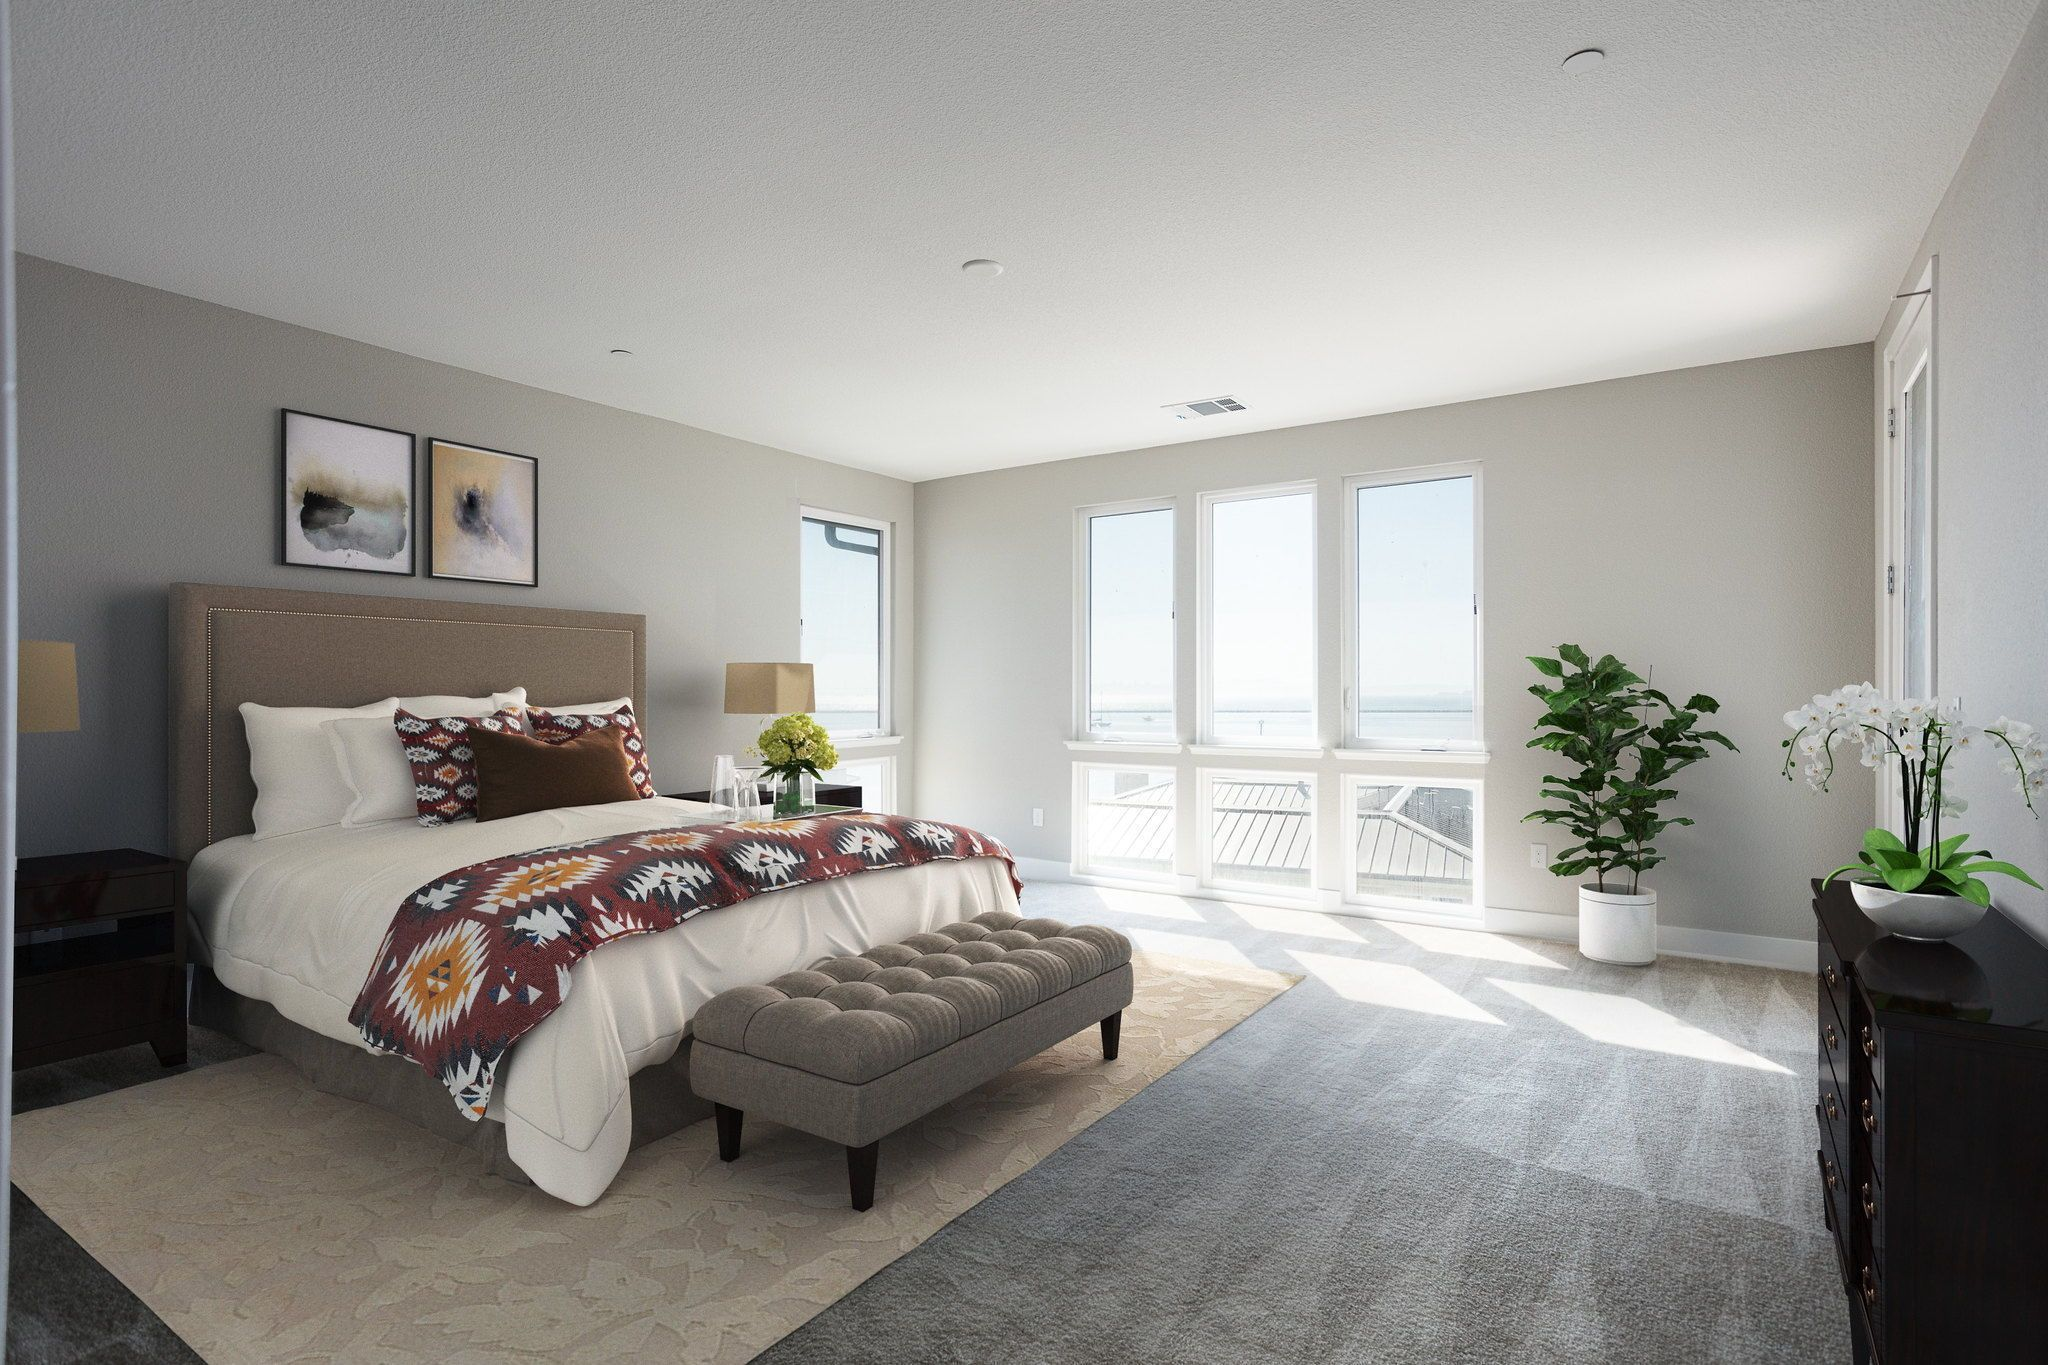 Waterline in Point Richmond, CA by Shea Homes | Residence 4 Master Bedroom #SheaHomes #SheaHomesNorCal #SheaHomeowners #SheaNorCal #LiveTheSheaDifference #NorCalHomes #NorCalRealEstate #BayAreaRealEstate #BayAreaNewHomes #HomeDesignInspiration #HomeInspiration #Waterline #PointRichmond Sales: Shea Homes Marketing Company (CalDRE #01378646); Construction: Shea Homes Limited Partnership (CSLB #855368). Equal Housing Opportunity.